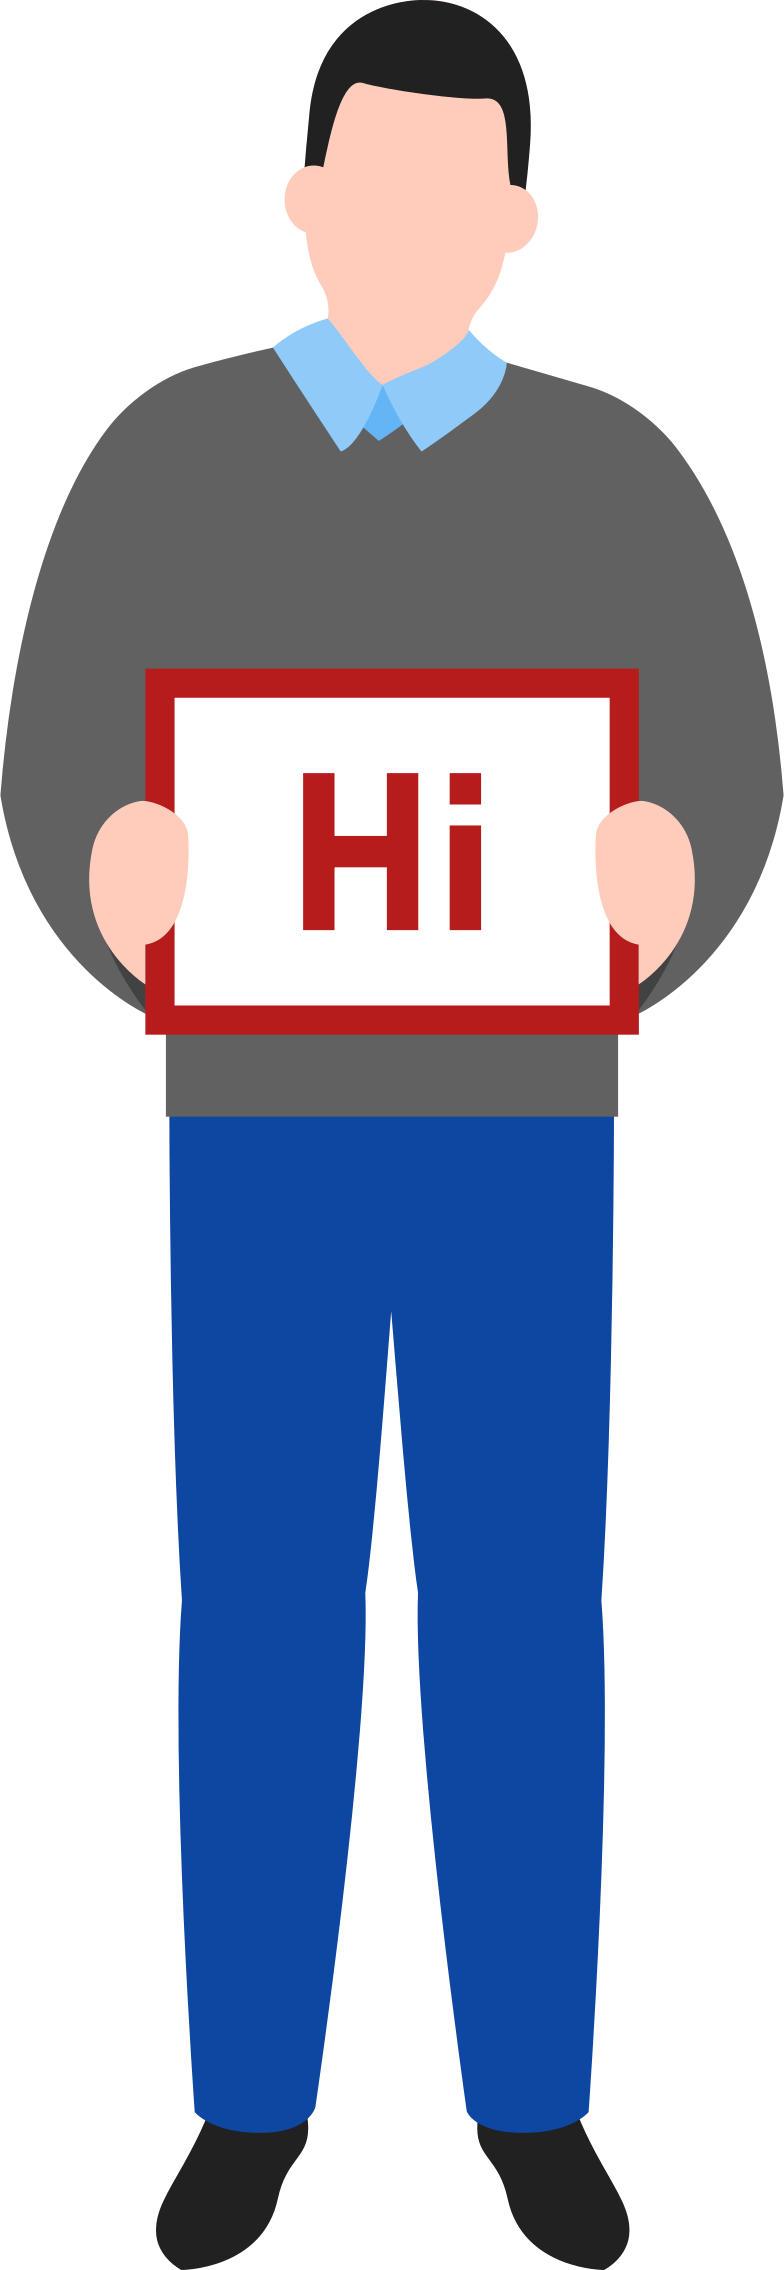 style greeting man Vector images in PNG and SVG | Icons8 Illustrations